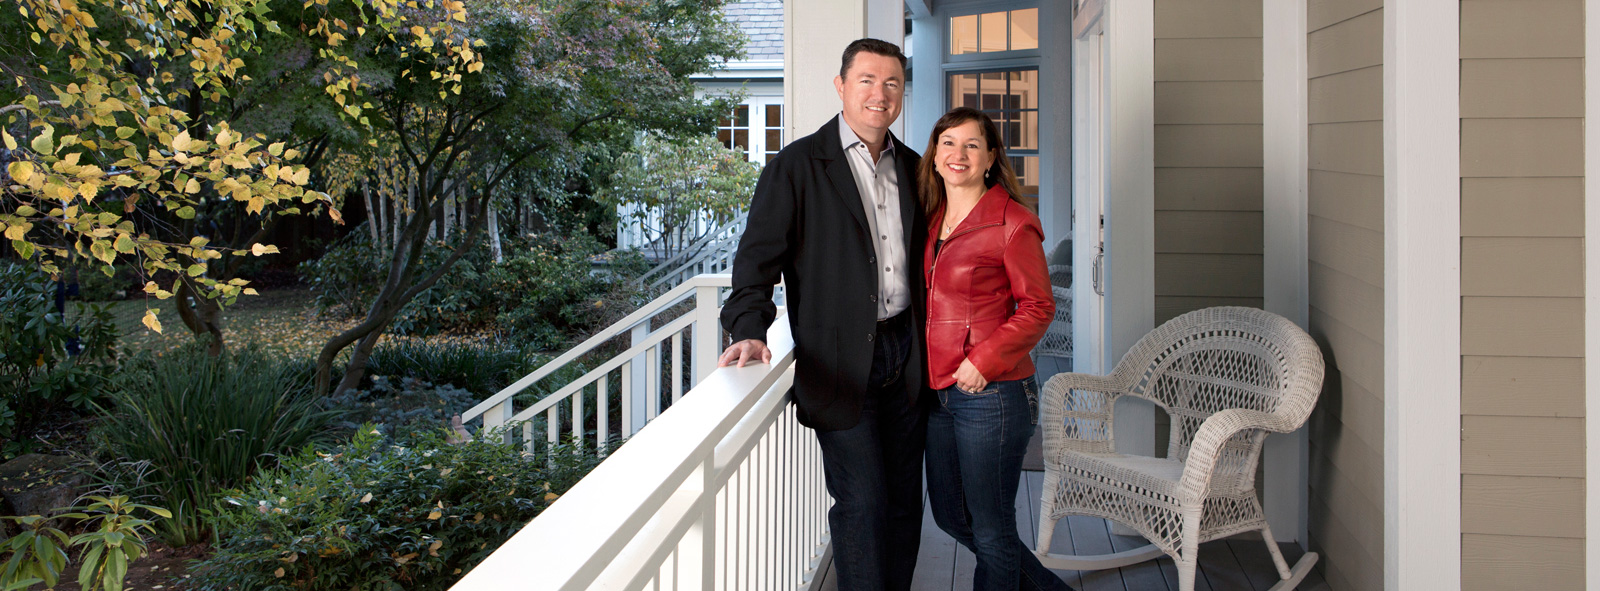 Image of First Republic Law Firms / Attorneys client(s) Kurt and Beth von Emster